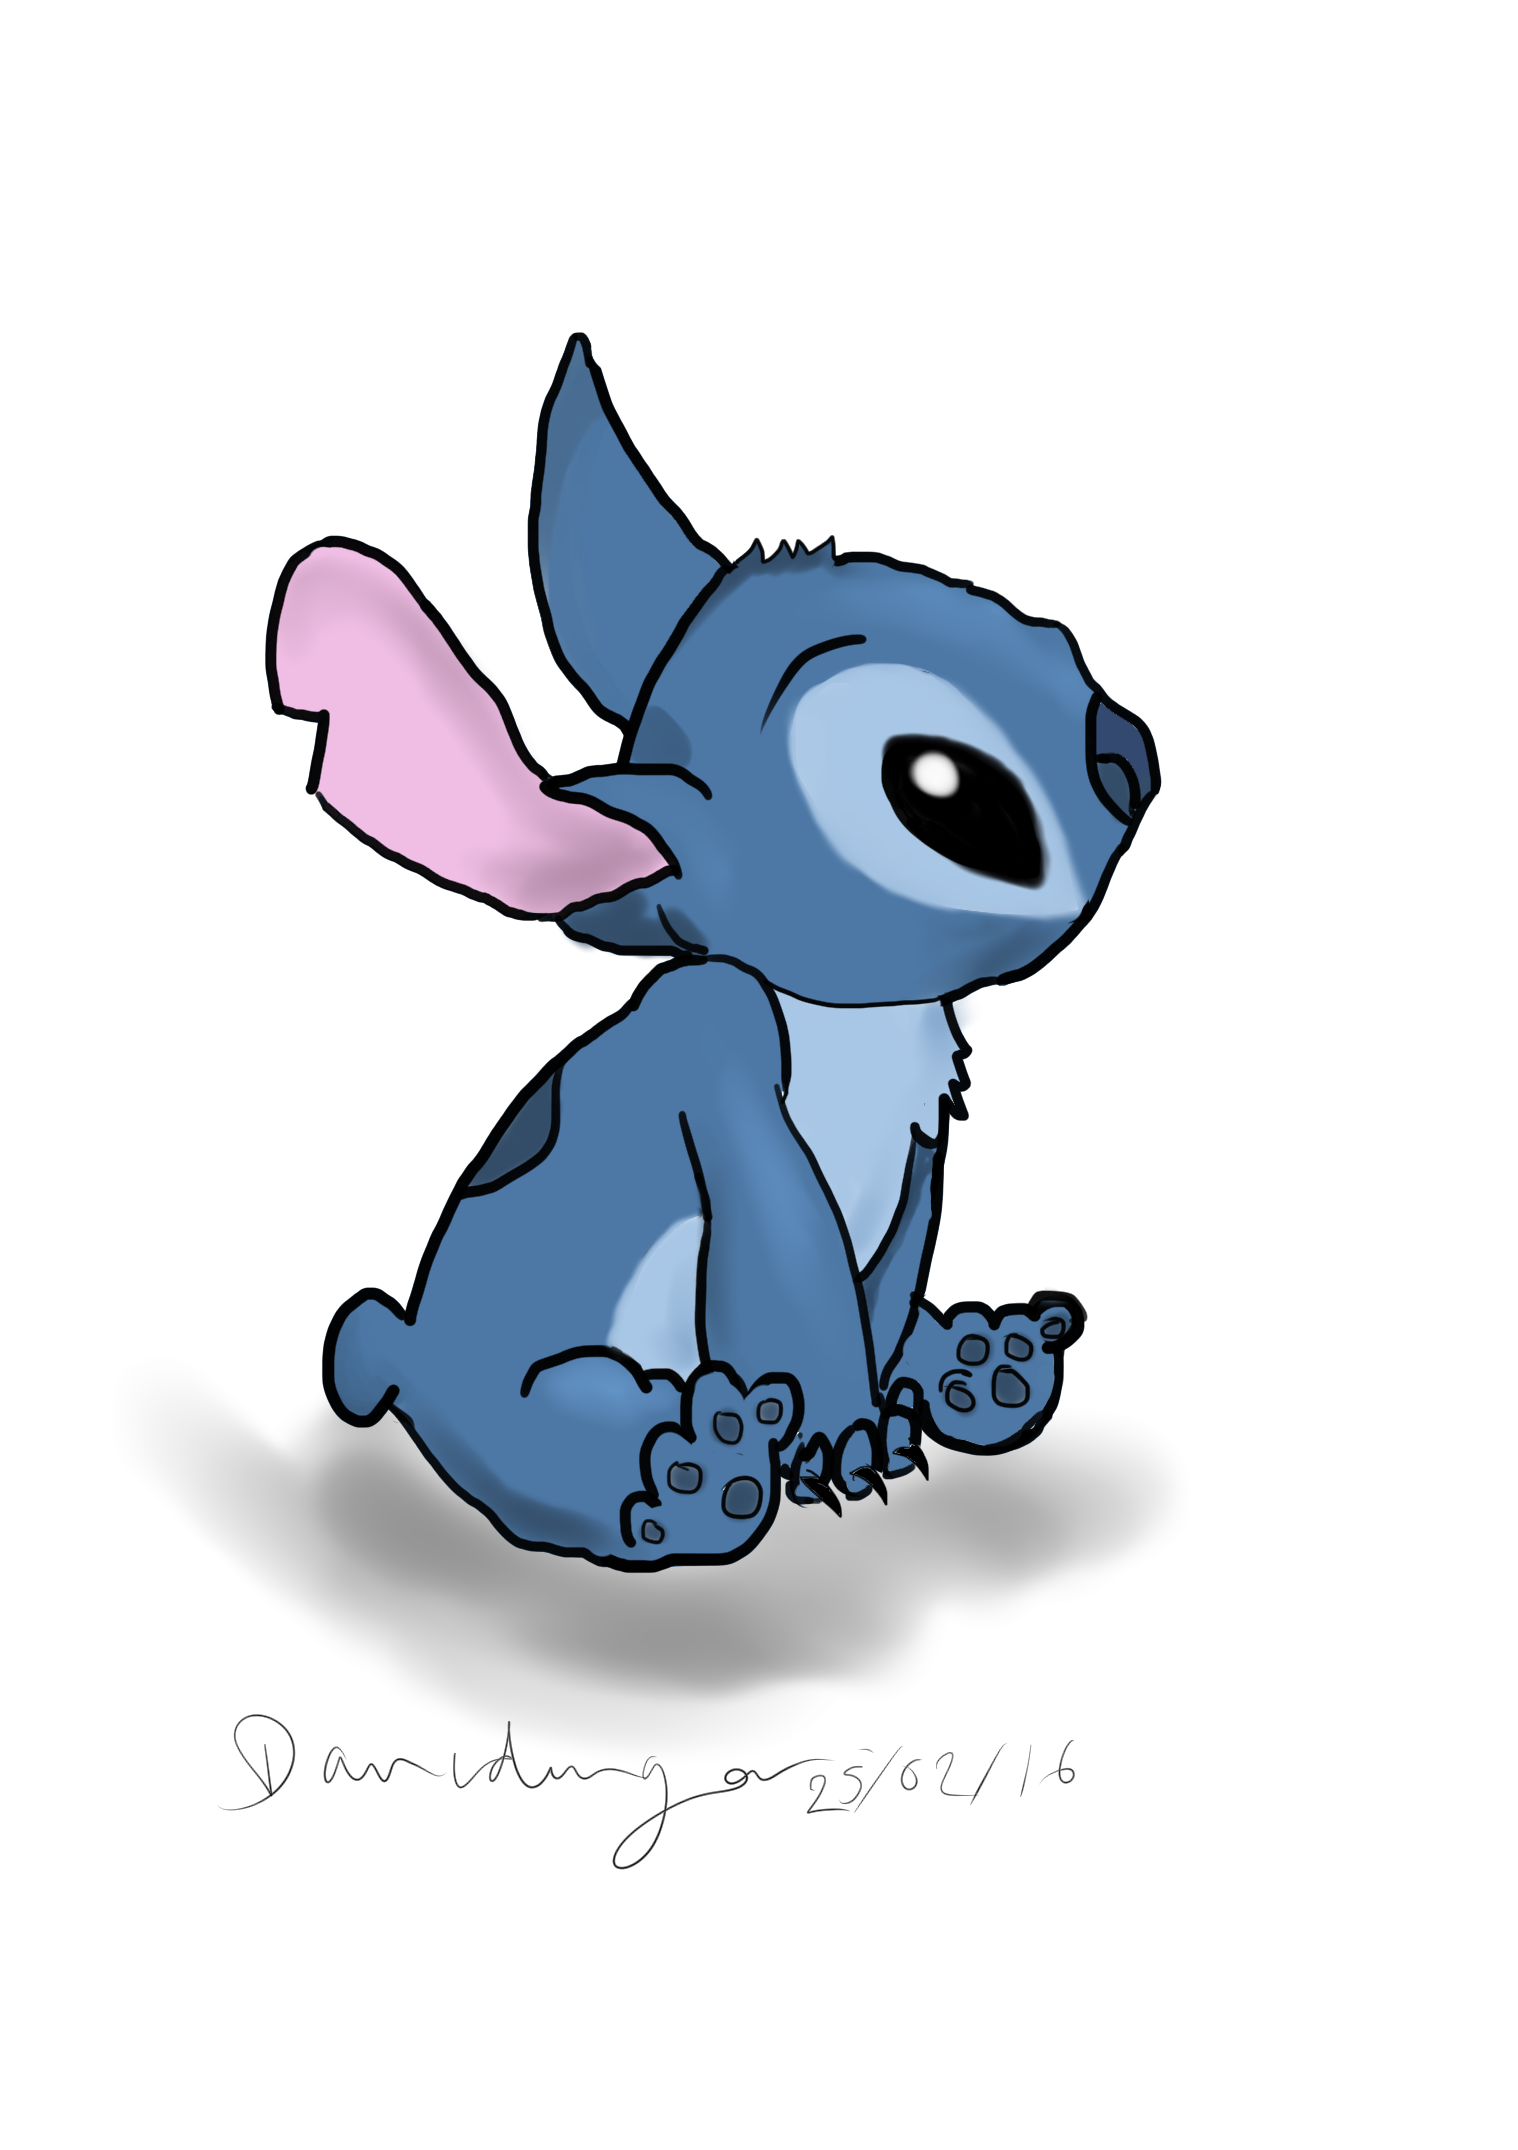 Hobo drawing stitch. First digital art by